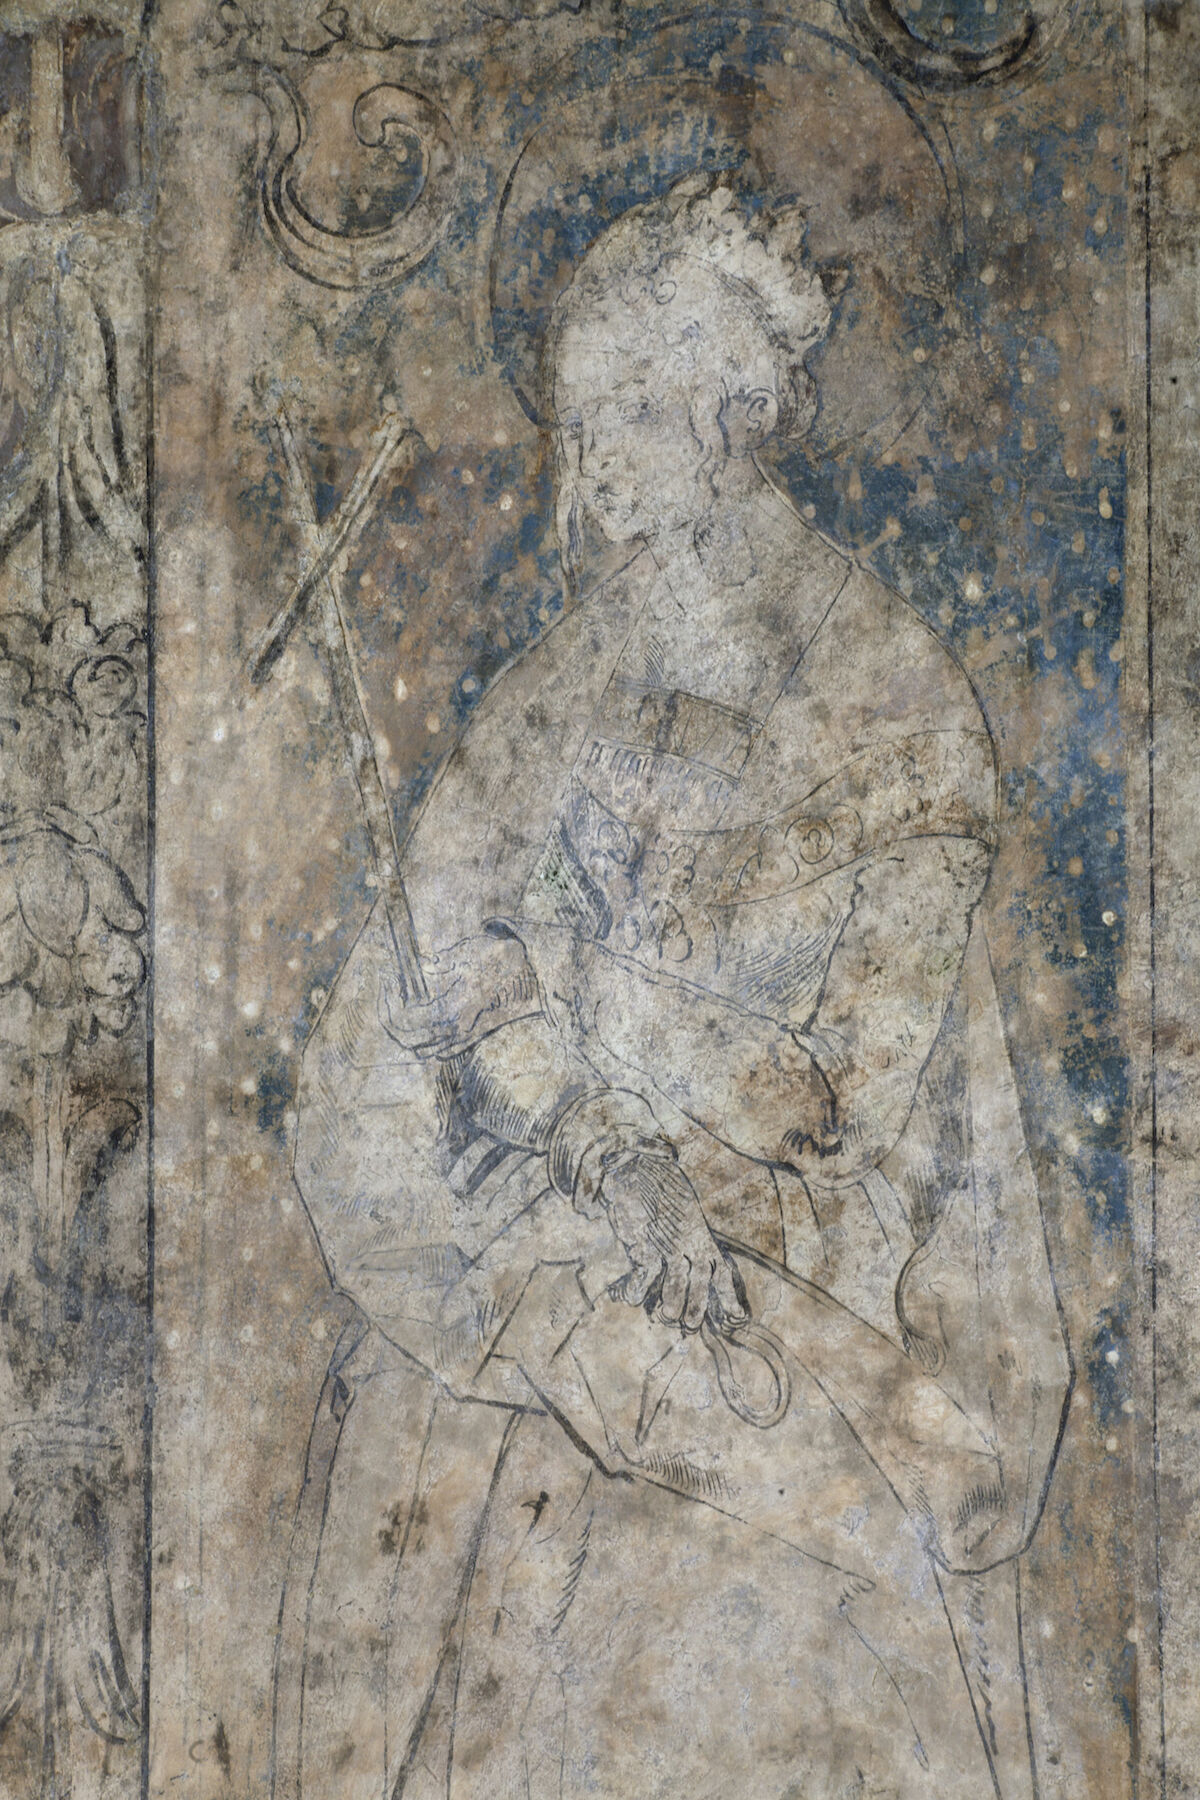 A portion of the wall painting at St. Stephen's Cathedral in Vienna that may have been executed by Albrecht Dürer. Photo © Federal Monuments Authority Austria, Vienna, Irene Dworak.